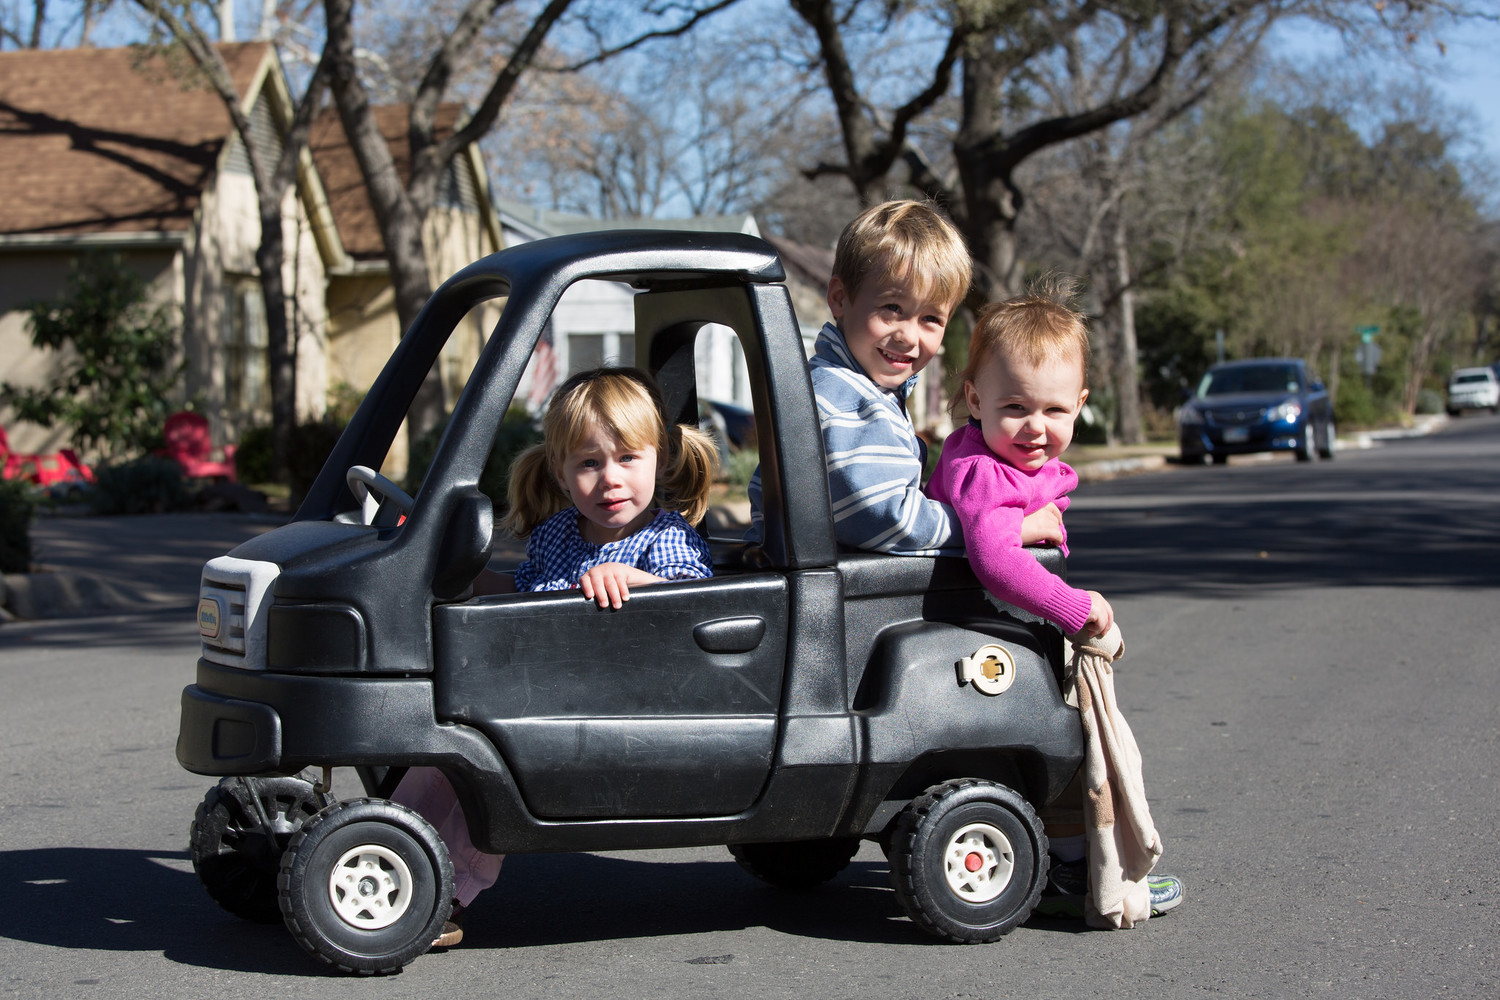 13+ Ways to Childproof Your Vehicle